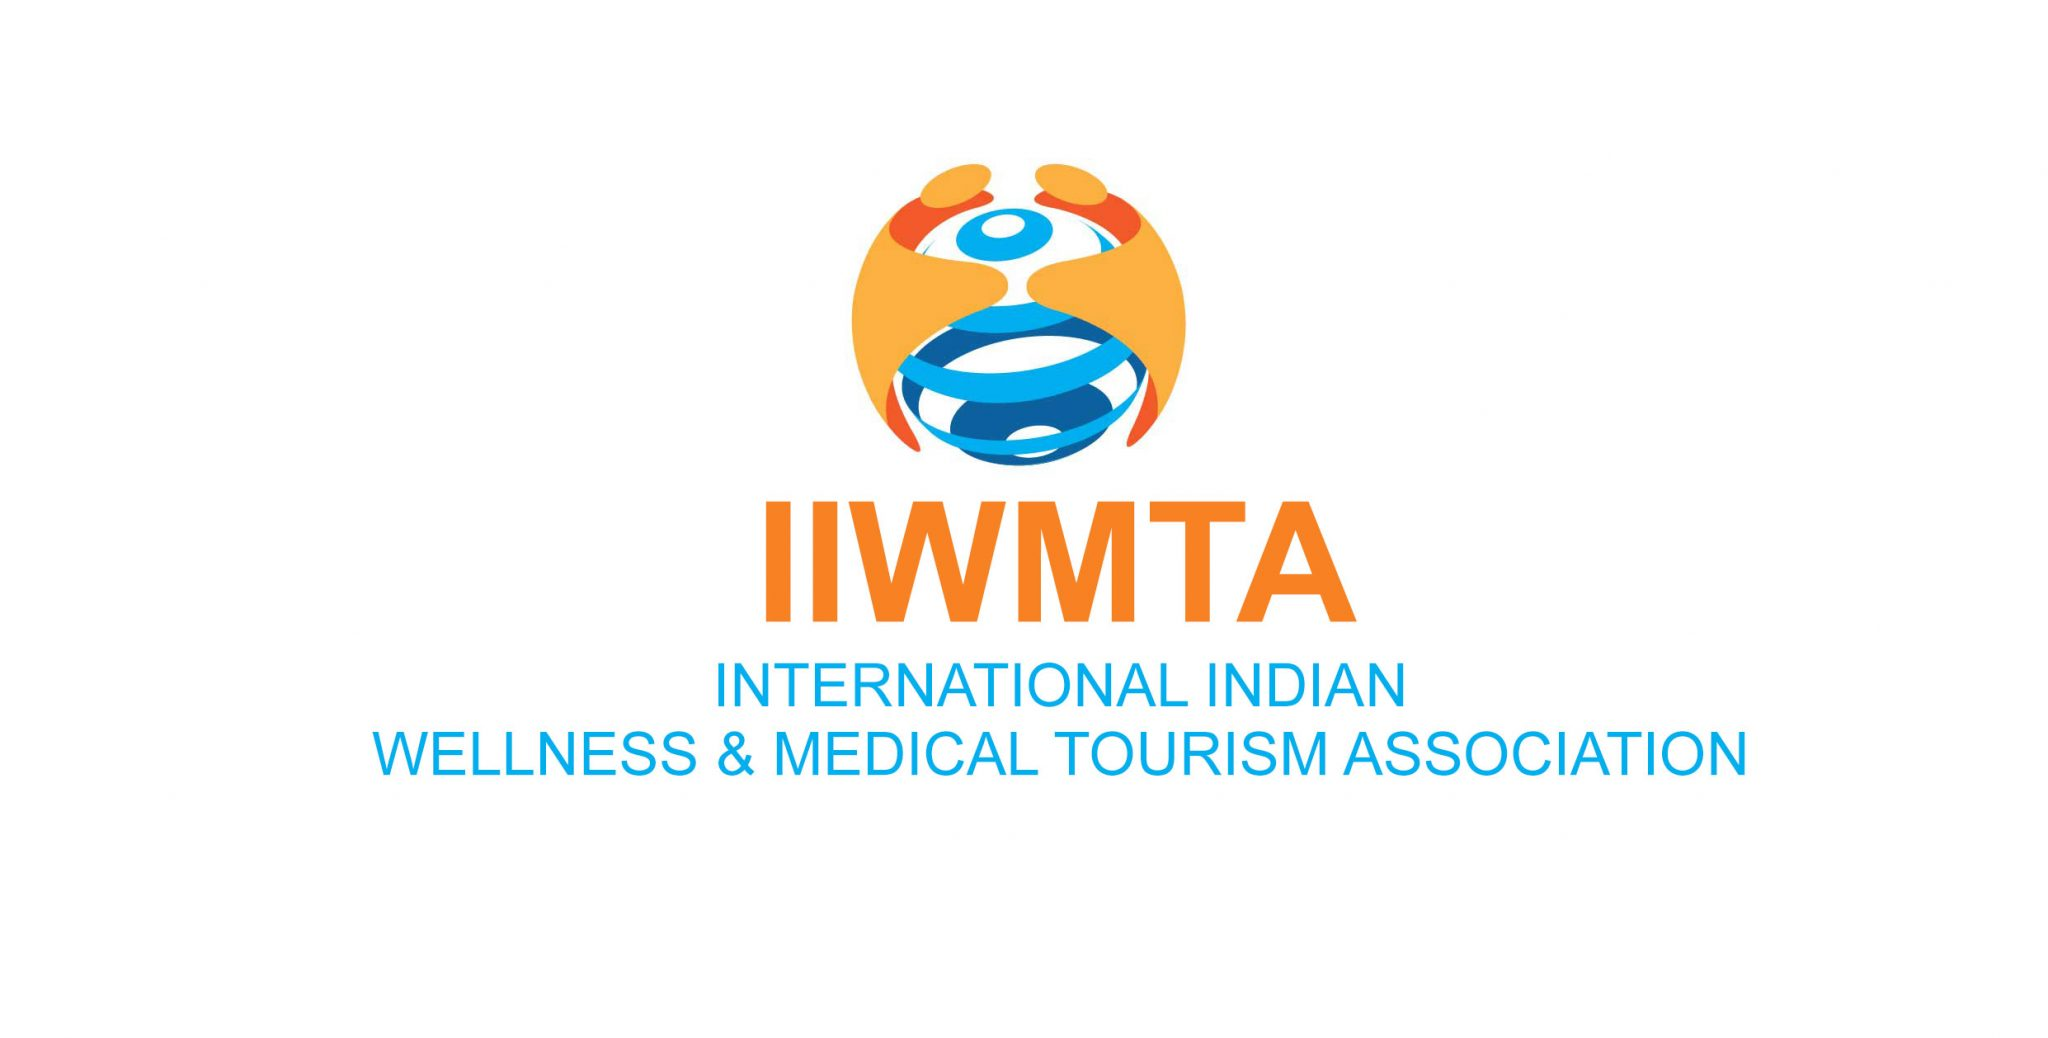 International Indian Wellness & Medical Tourism Association